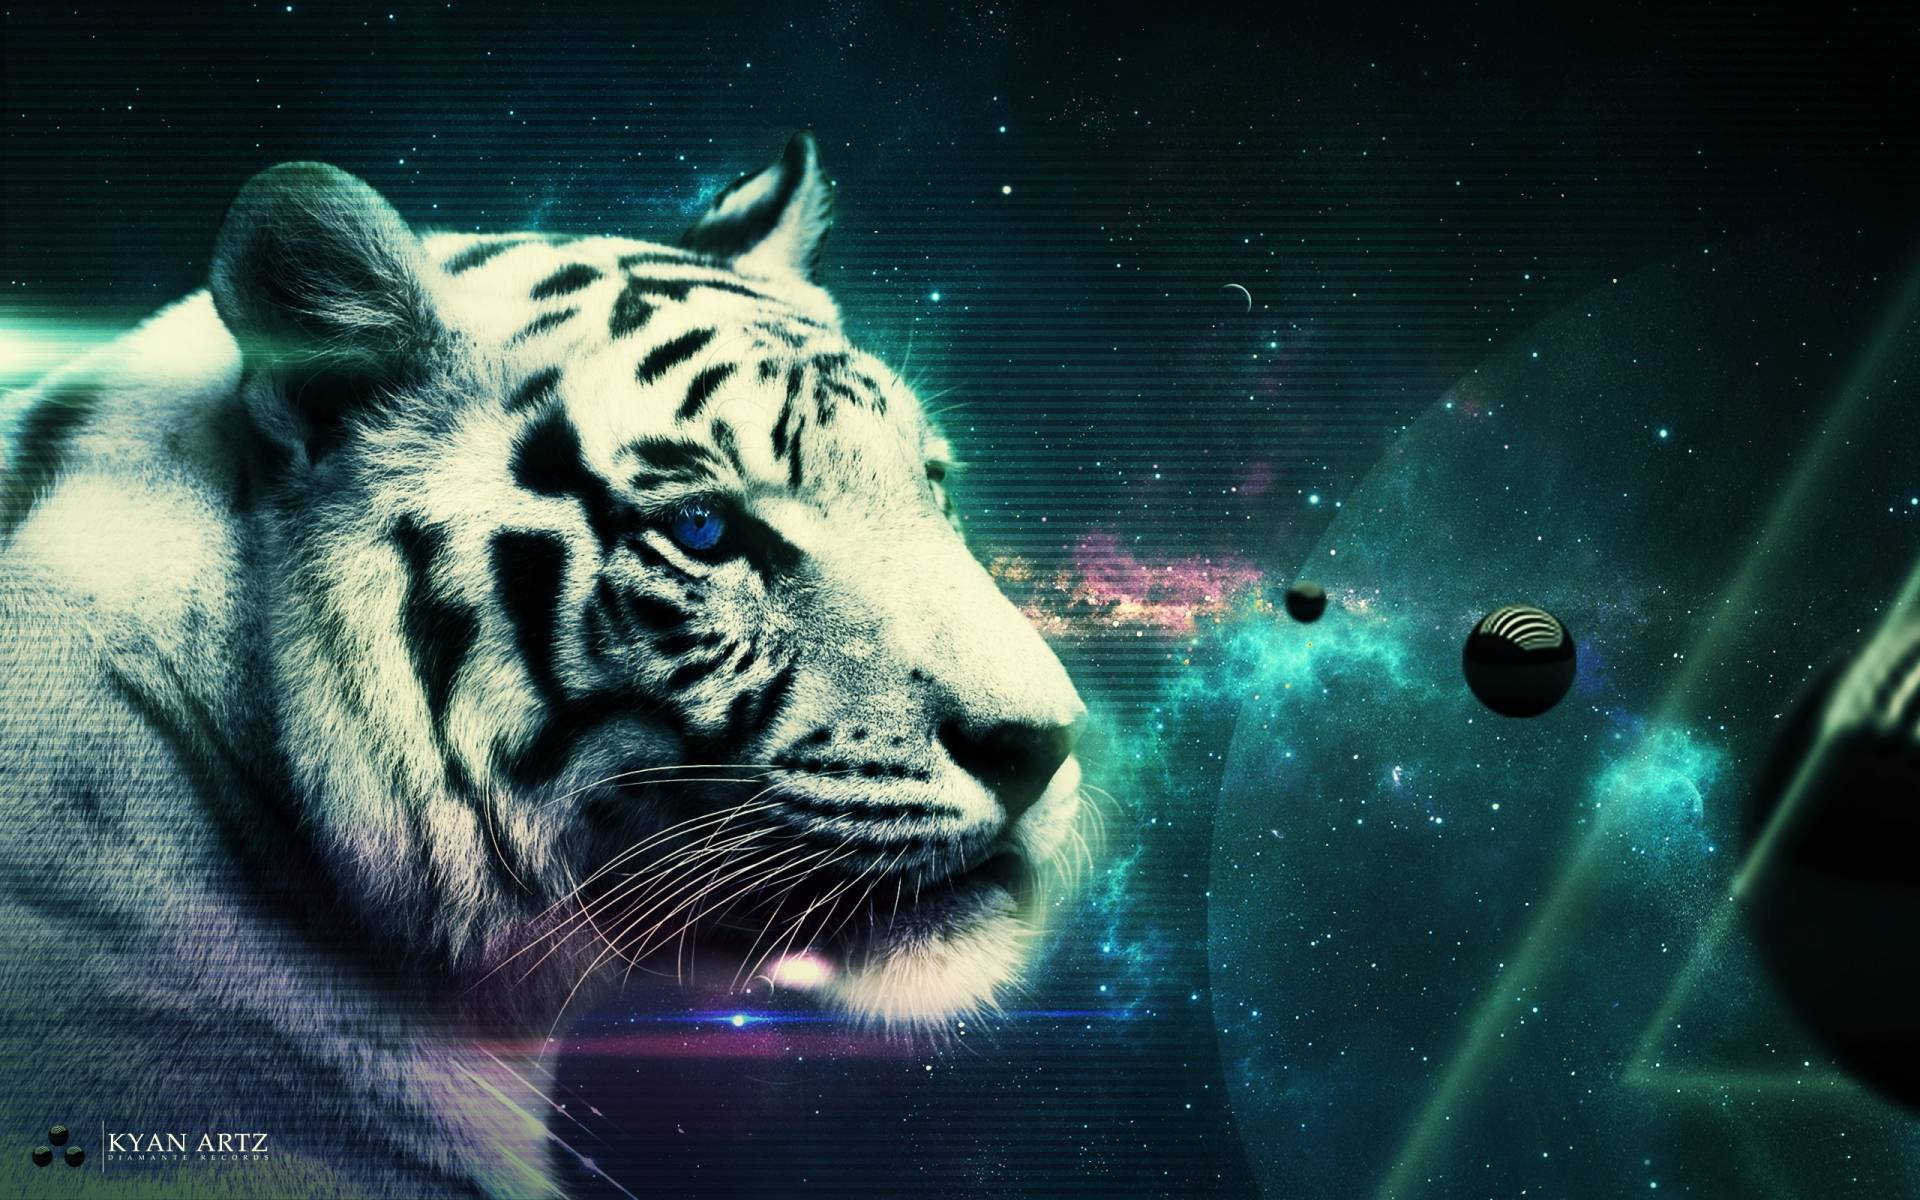 62 628370 3d tiger live wallpaper download white tiger in